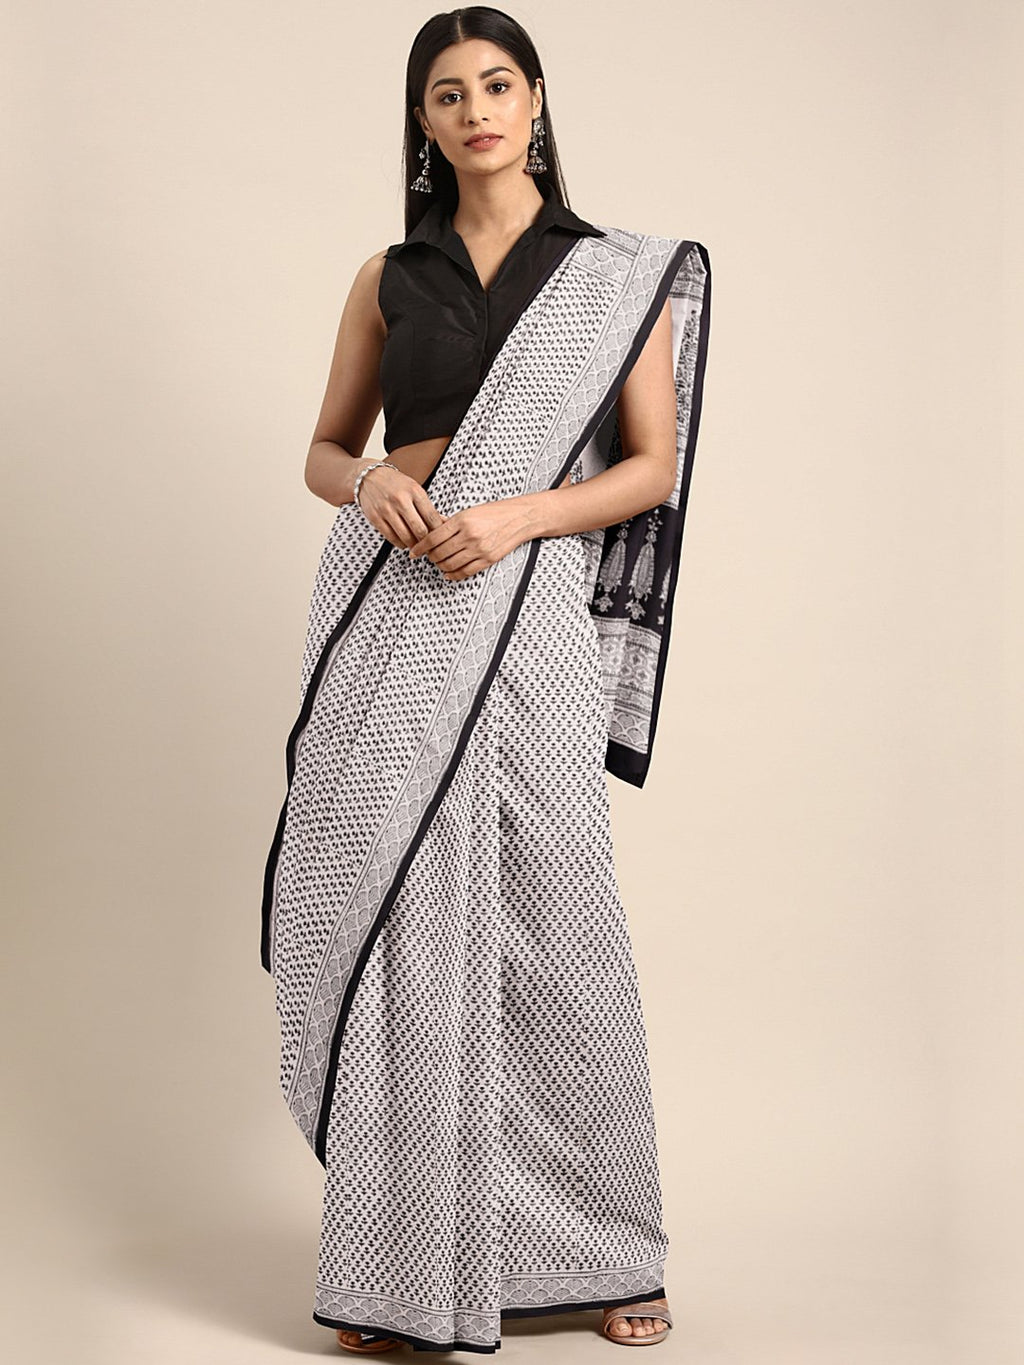 Off-White Black Hanblock Print Saree-Saree-Kalakari India-MYBASA0015-Bagh, Cotton, Geographical Indication, Hand Blocks, Hand Crafted, Heritage Prints, Natural Dyes, Sarees, Sustainable Fabrics-[Linen,Ethnic,wear,Fashionista,Handloom,Handicraft,Indigo,blockprint,block,print,Cotton,Chanderi,Blue, latest,classy,party,bollywood,trendy,summer,style,traditional,formal,elegant,unique,style,hand,block,print, dabu,booti,gift,present,glamorous,affordable,collectible,Sari,Saree,printed, holi, Diwali, birt